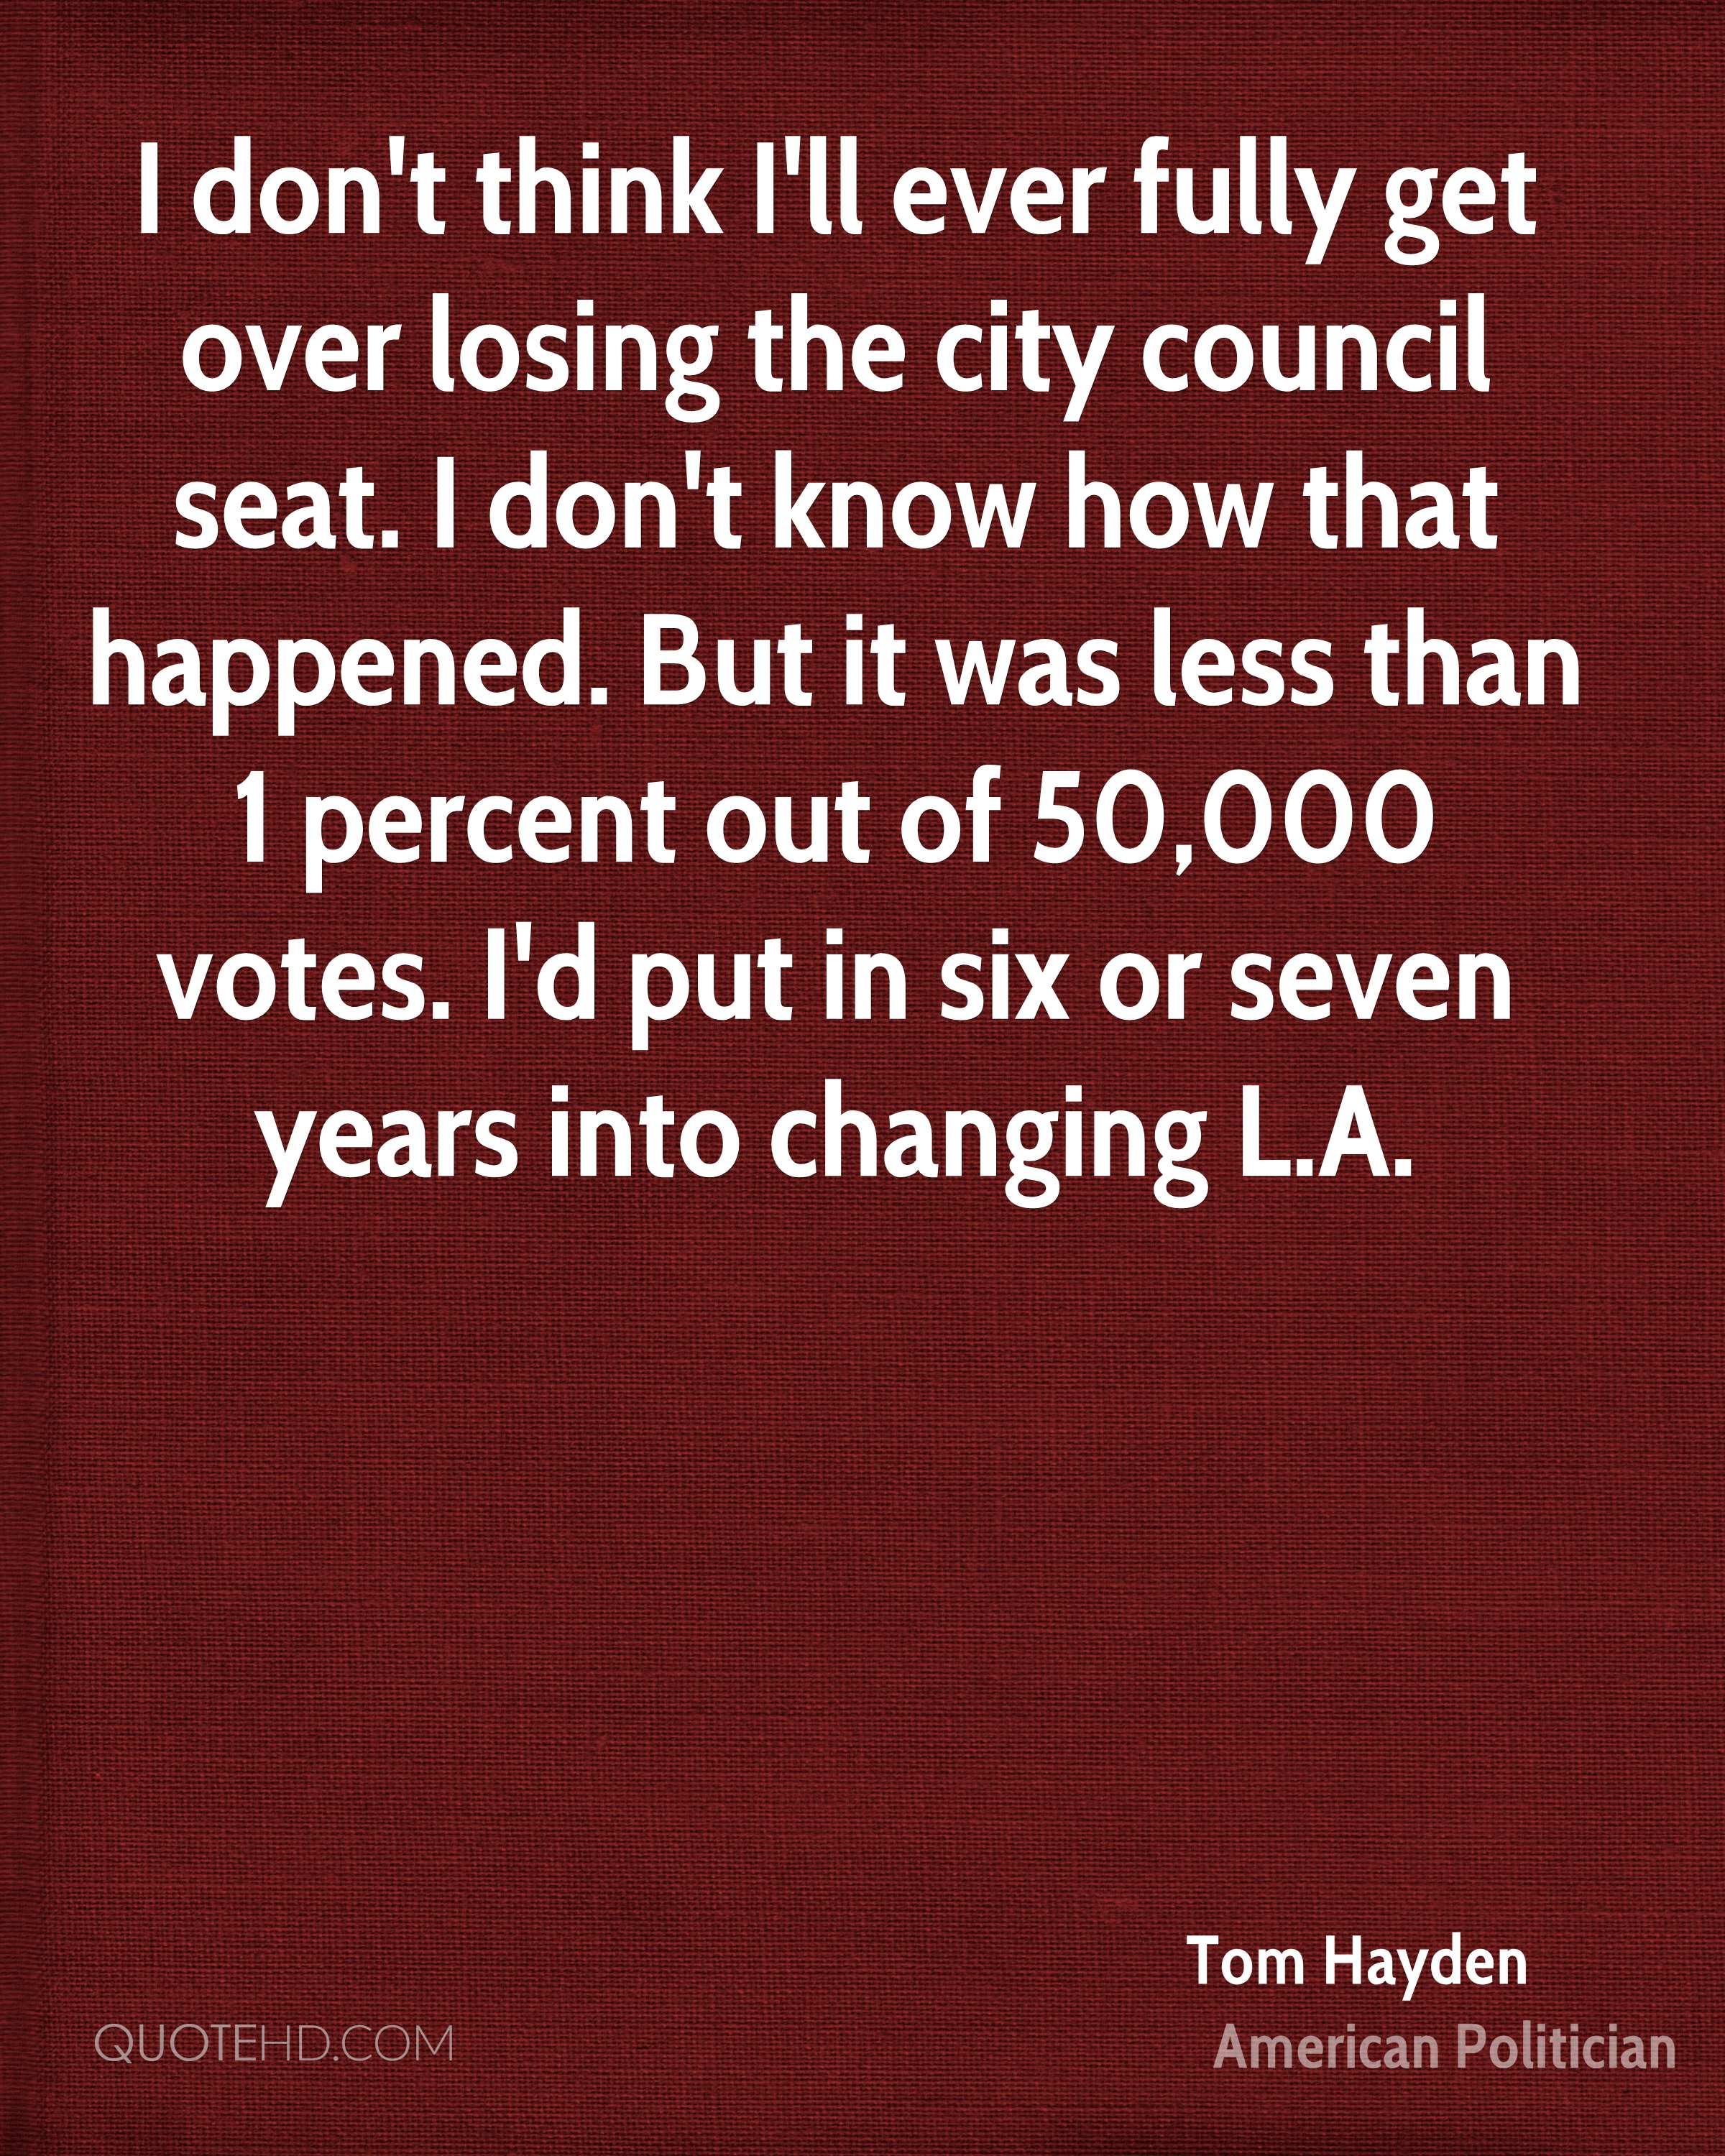 I don't think I'll ever fully get over losing the city council seat. I don't know how that happened. But it was less than 1 percent out of 50,000 votes. I'd put in six or seven years into changing L.A.